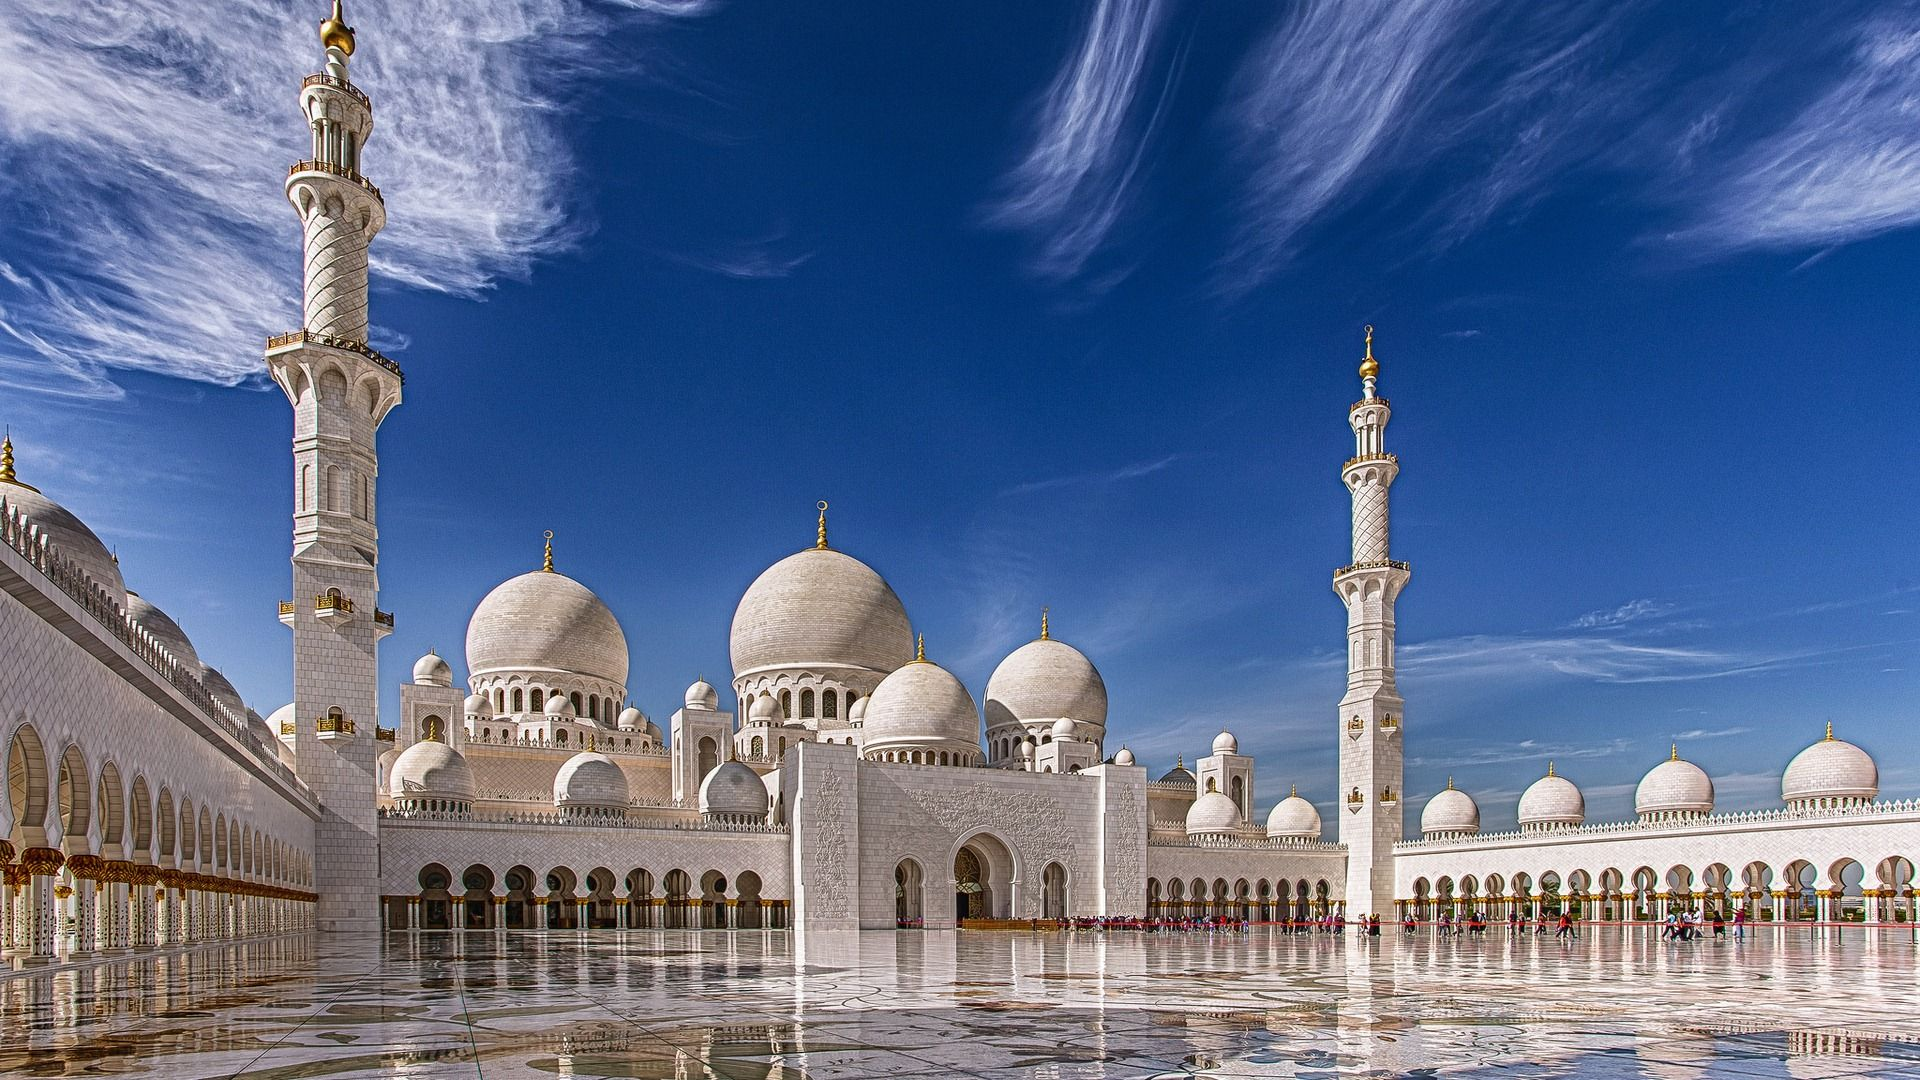 Sheikh Zayed Grand Mosque Abu Dhabi Uae Images Hd Wallpapers Images Grand Mosque Sheikh Zayed Grand Mosque Beautiful Mosques